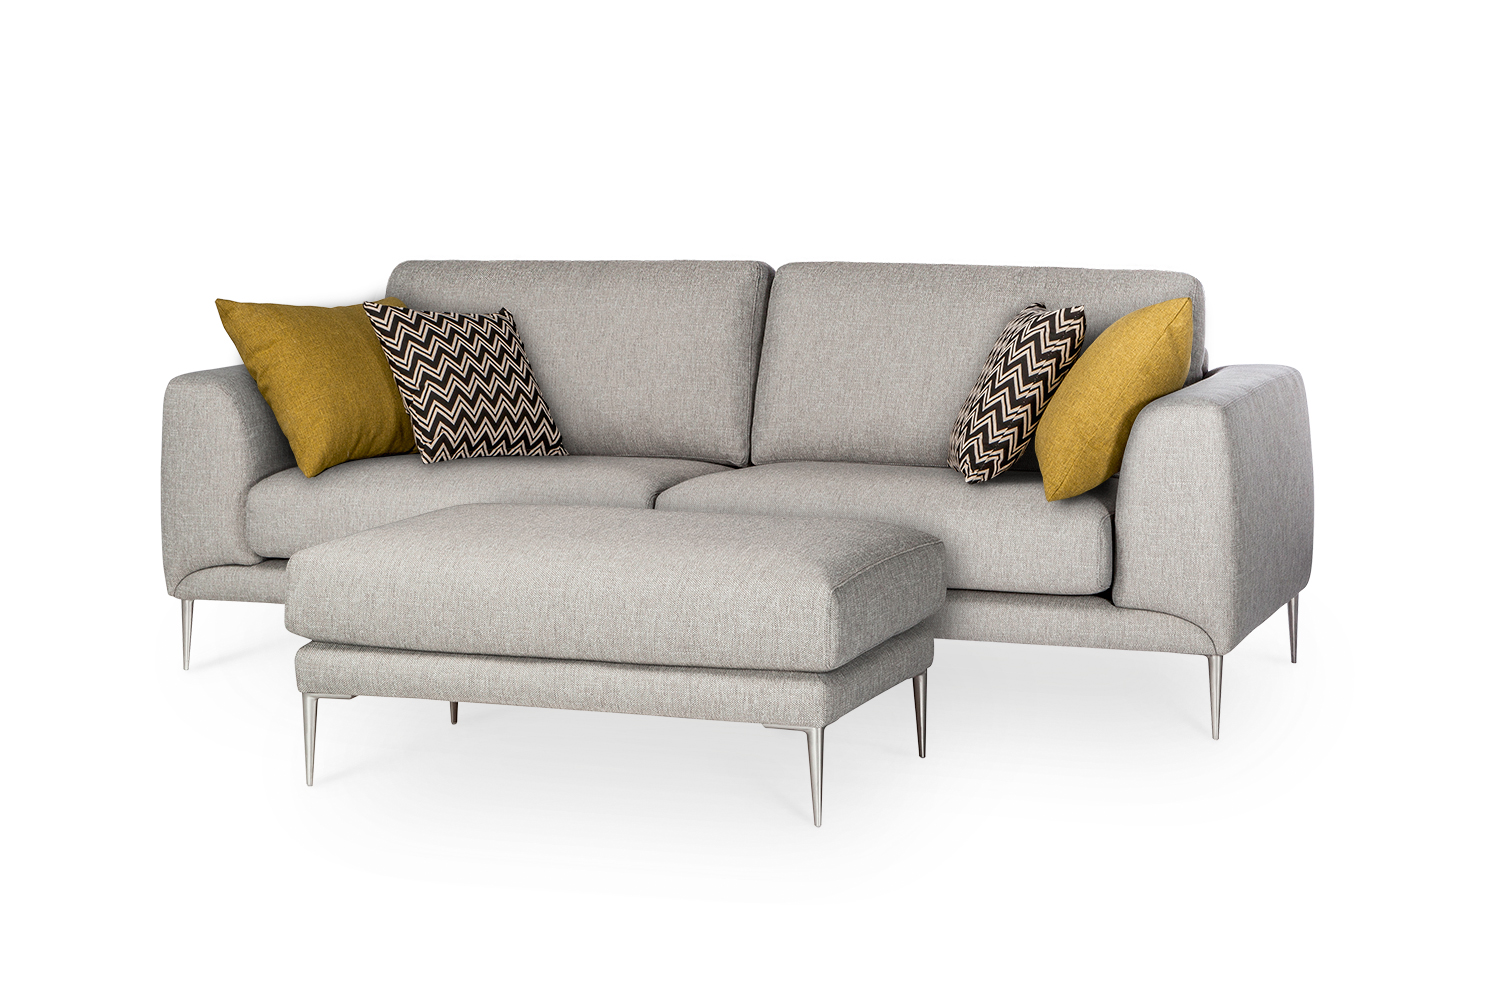 In picture Lorenzo 3 LC and Lorenzo Jumbo footstool; fabric: Solution 60; leg 15 Stainless Steel.